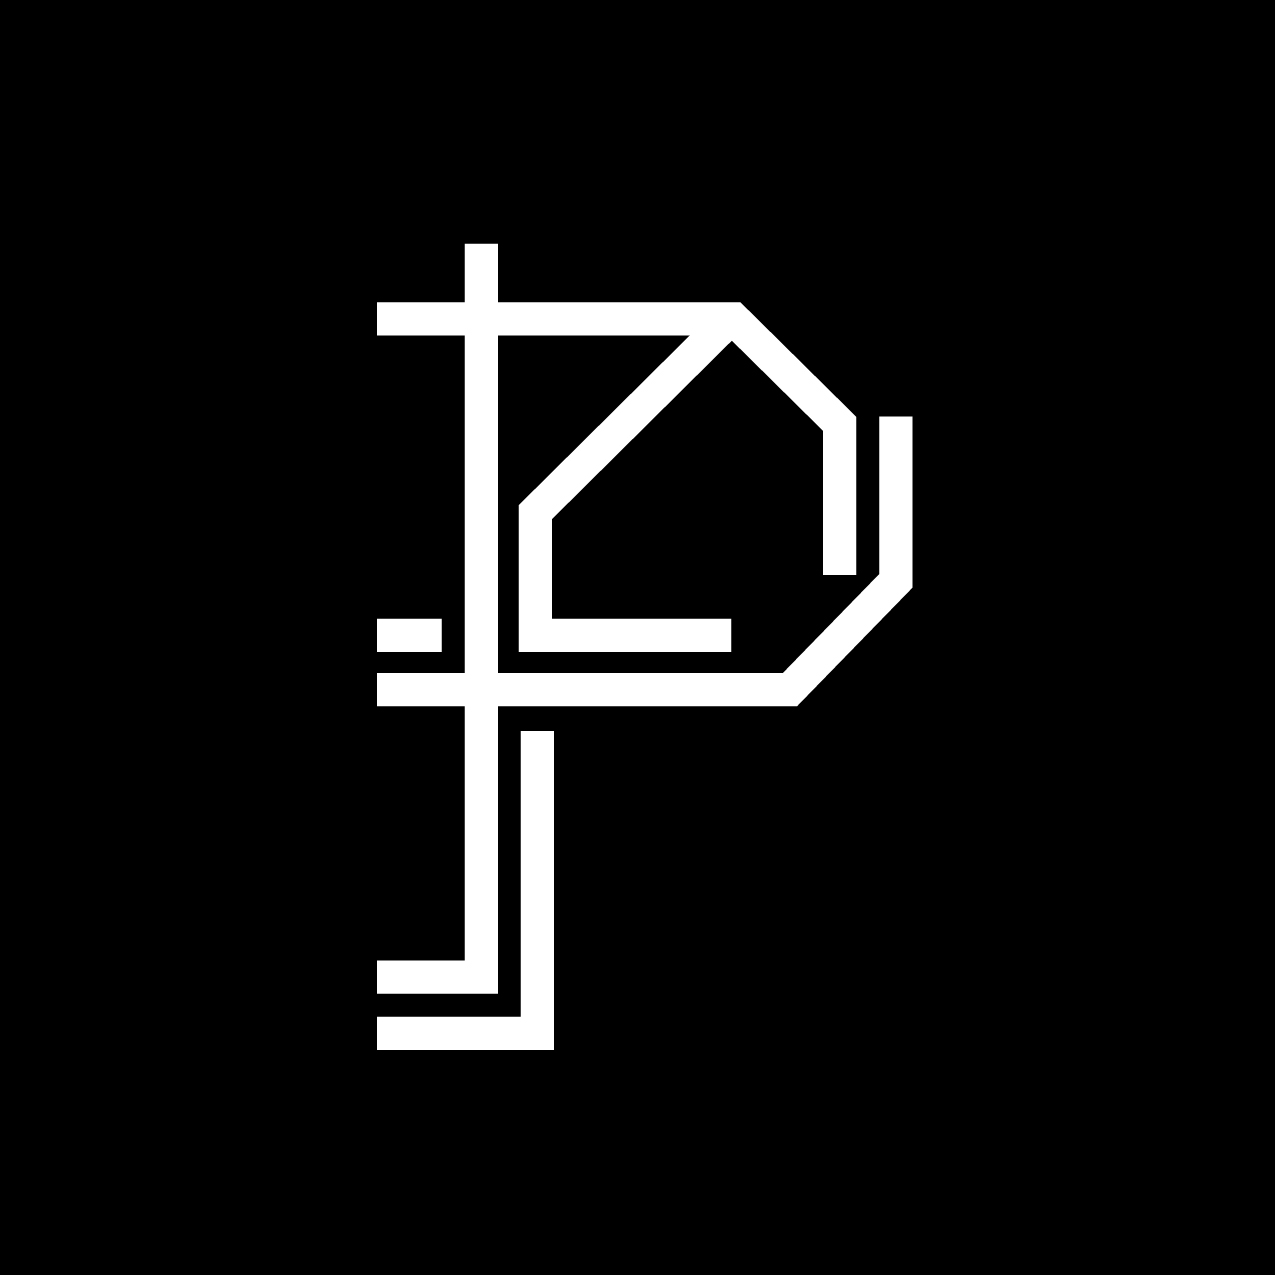 Letter P4 Design by Furia